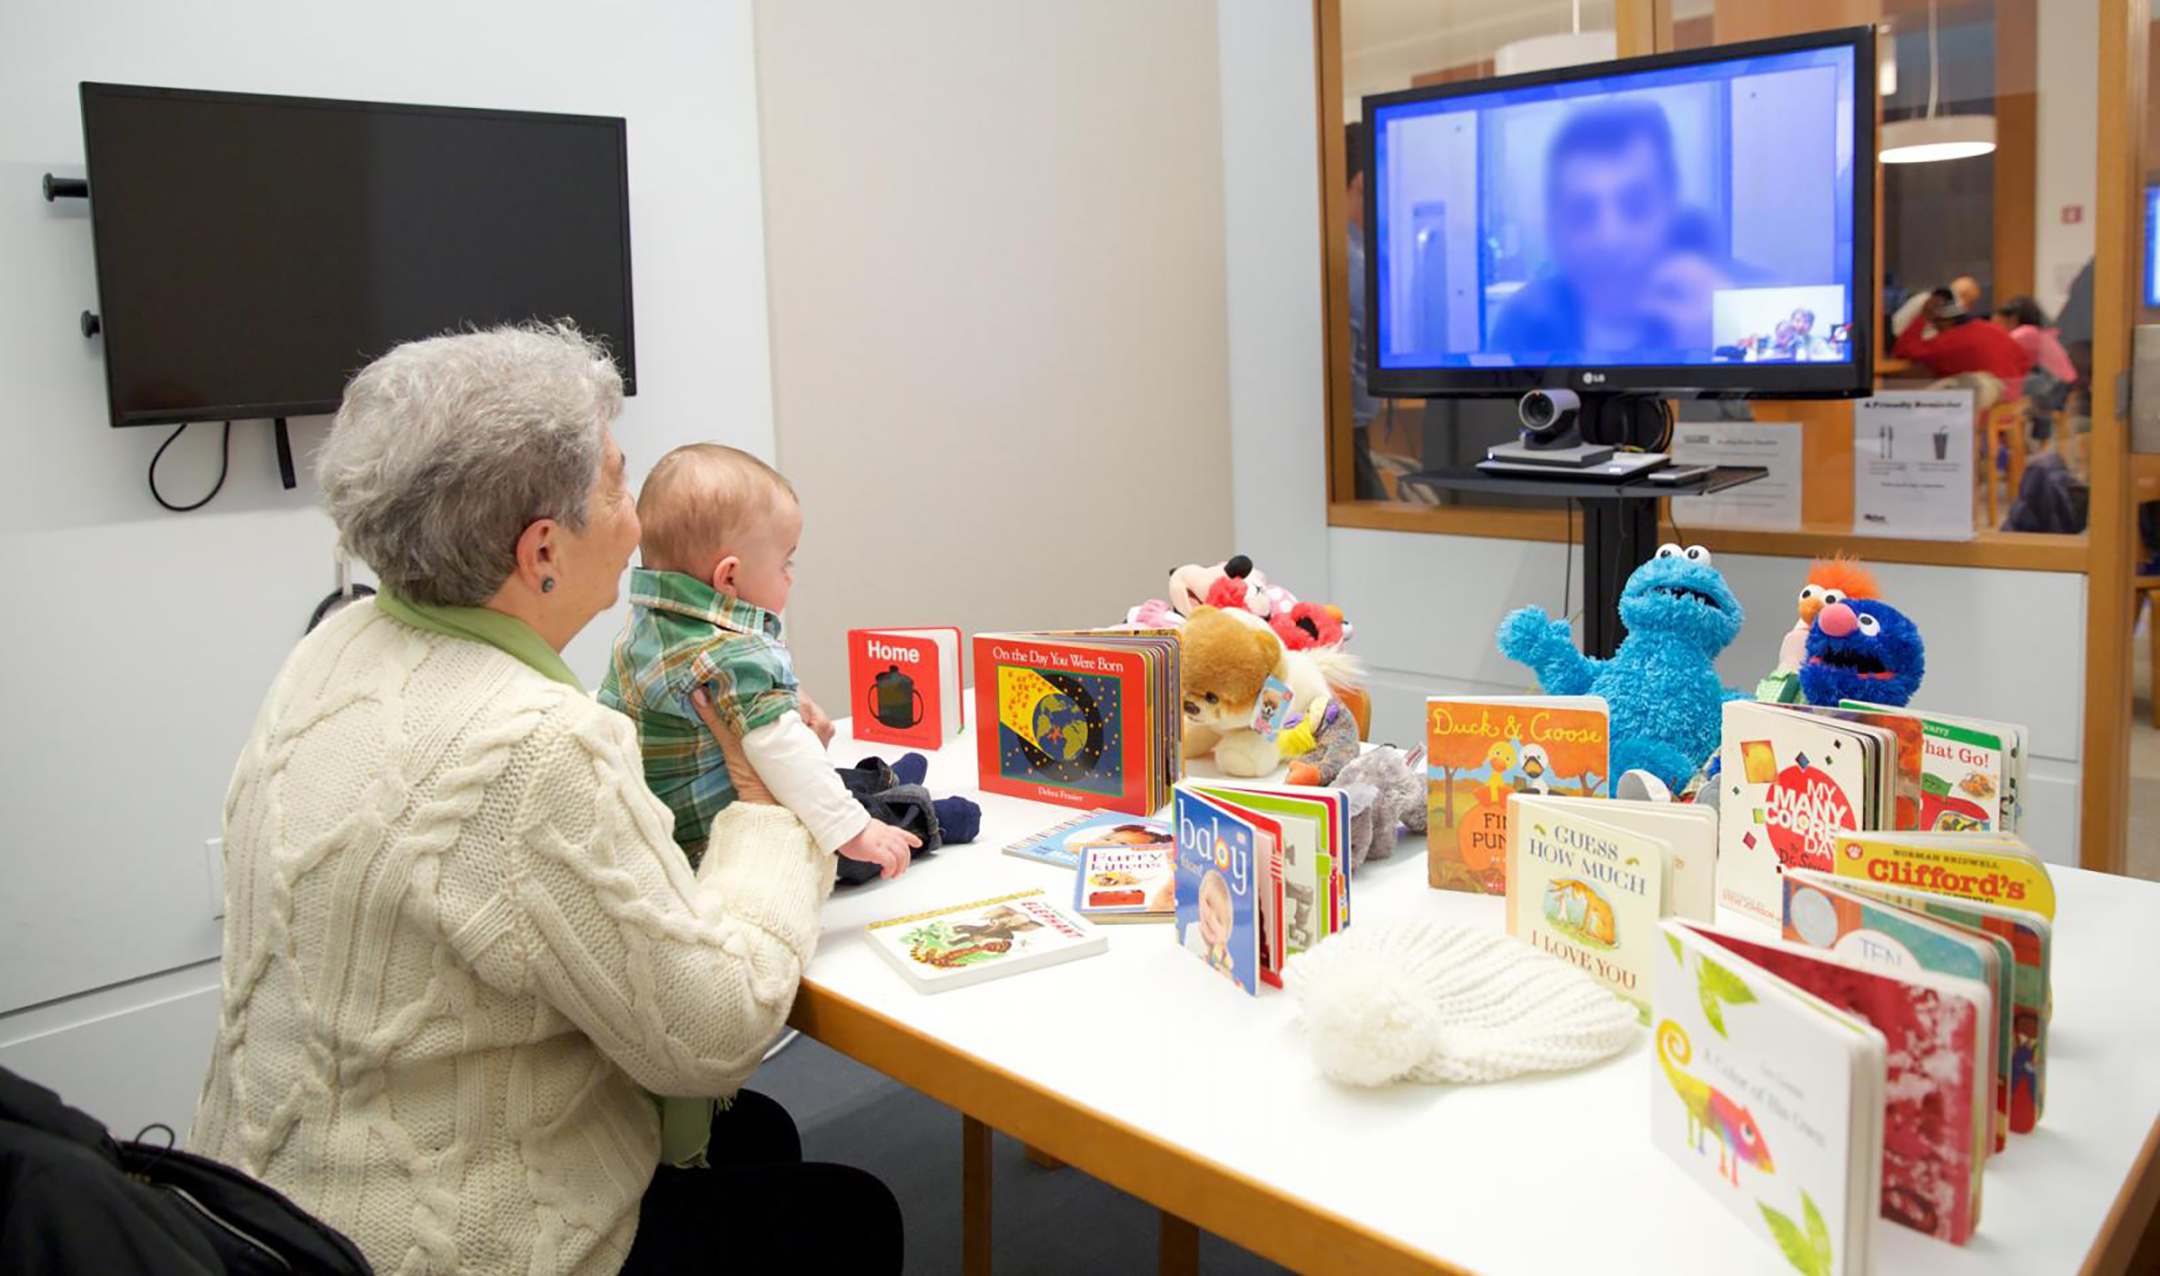 Elderly woman holding a small child sit at a table covered in toys and kids books while connecting with a male loved one, who's face is obscured, via a video screen